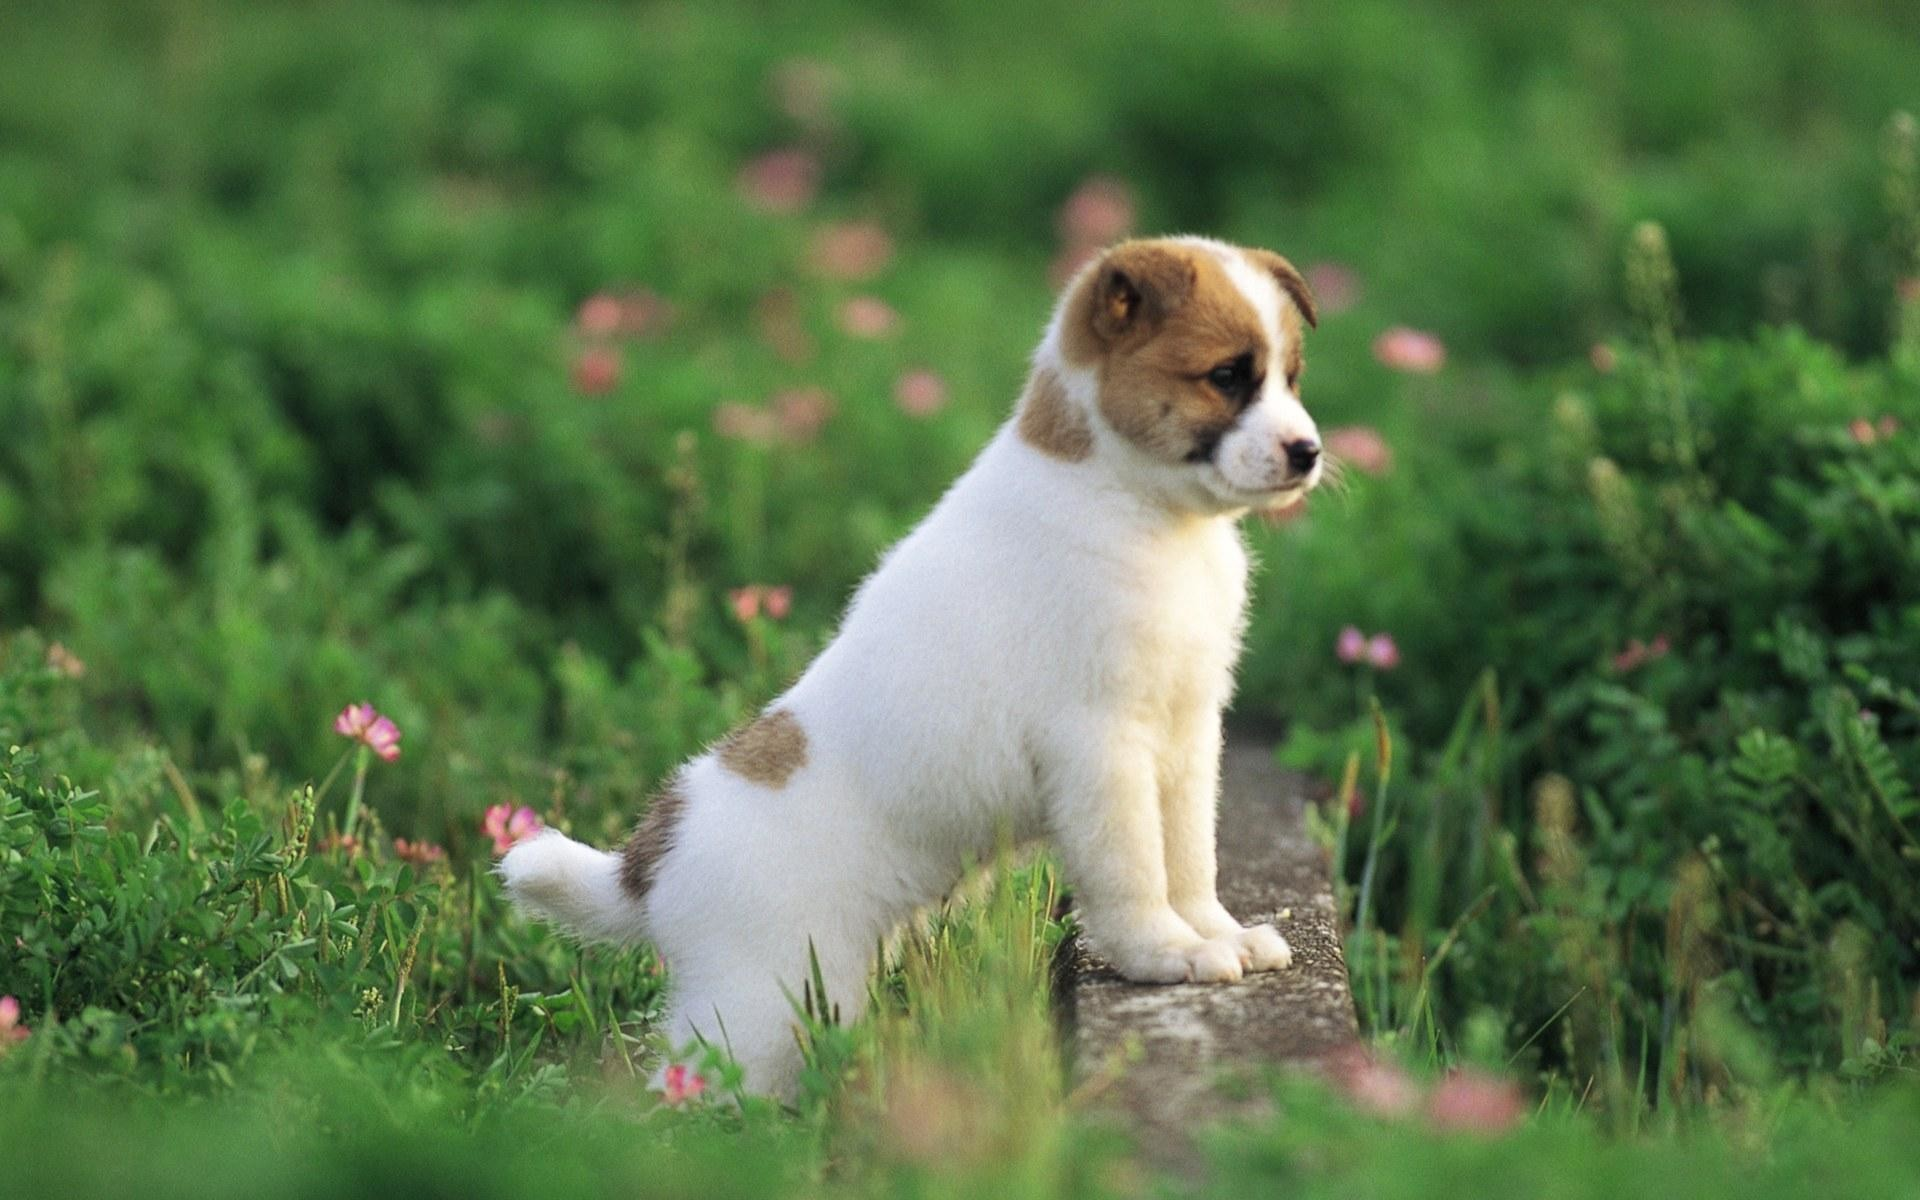 HD Wallpaper and background photos of Pretty Dog wallpaper for fans of  Puppies images.